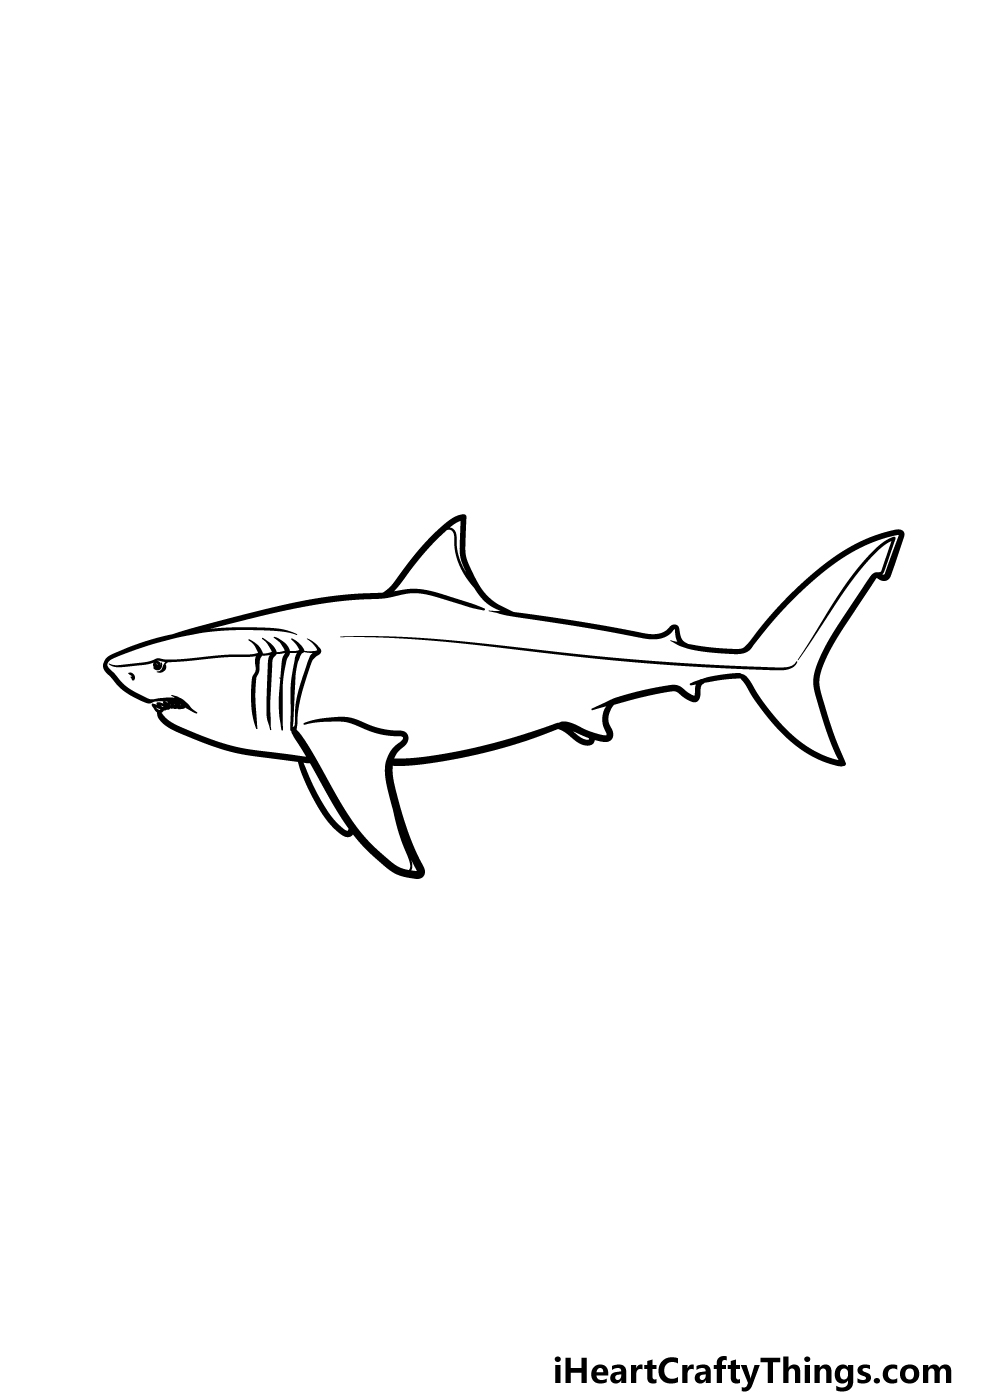 drawing a megalodon step 4